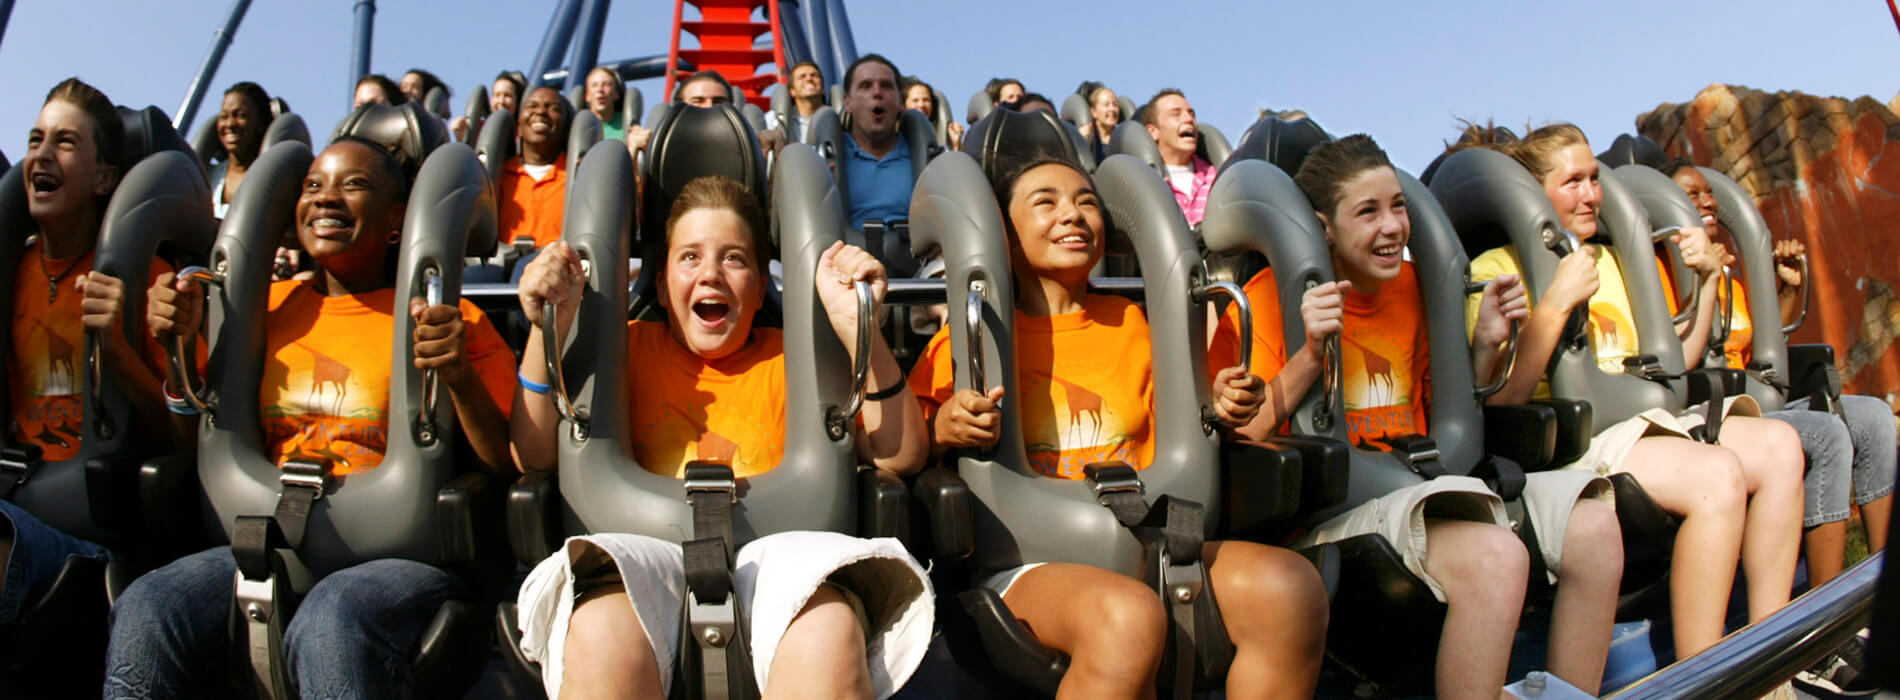 A large group of kids and teens riding a roller coaster at Busch Gardens Tampa Bay, located in Florida